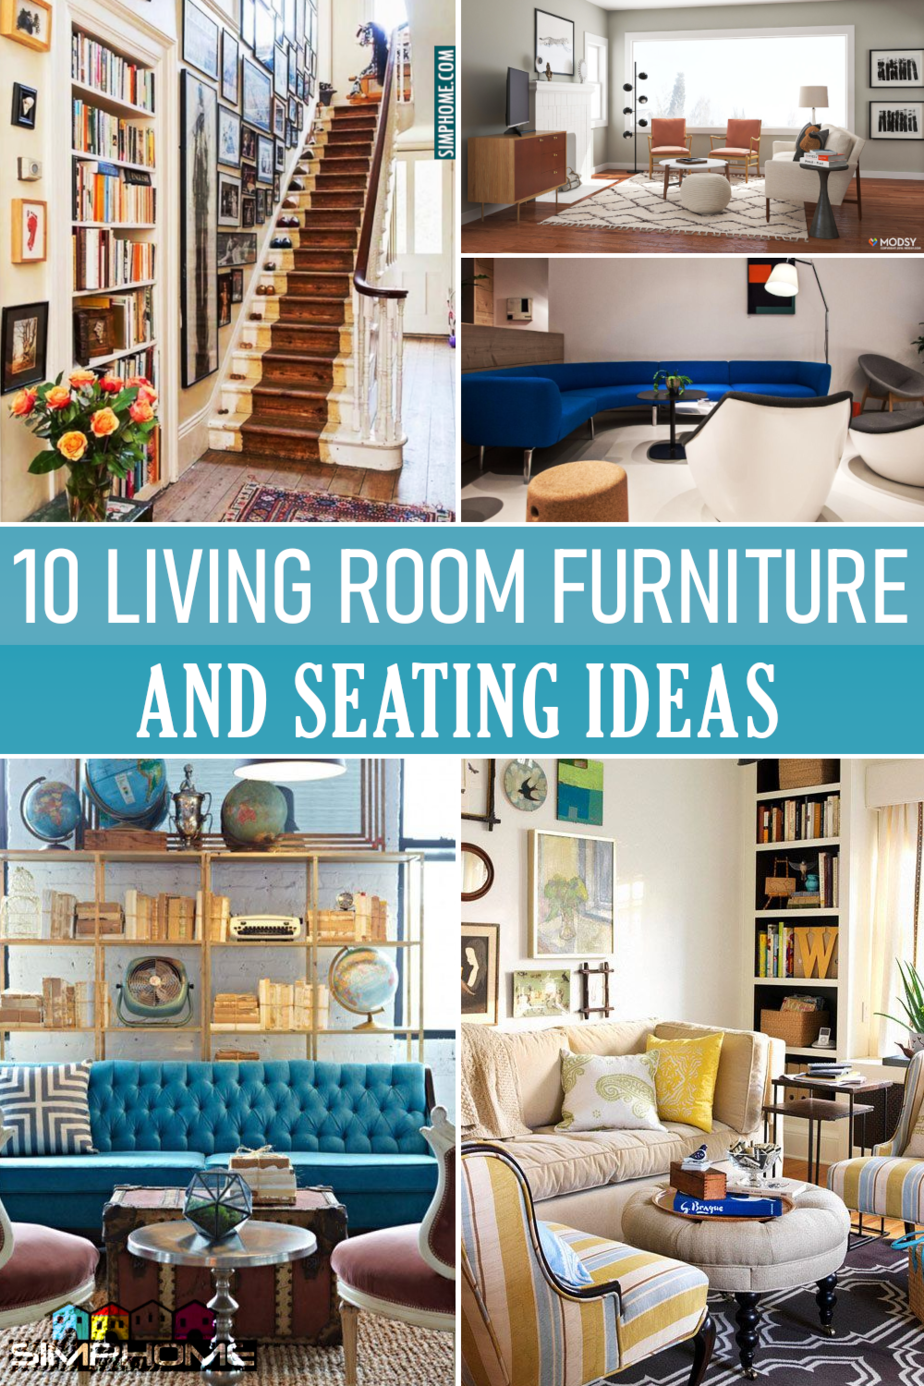 10 Living Room Furniture and Seating Space Ideas via Simphome.comFeatured